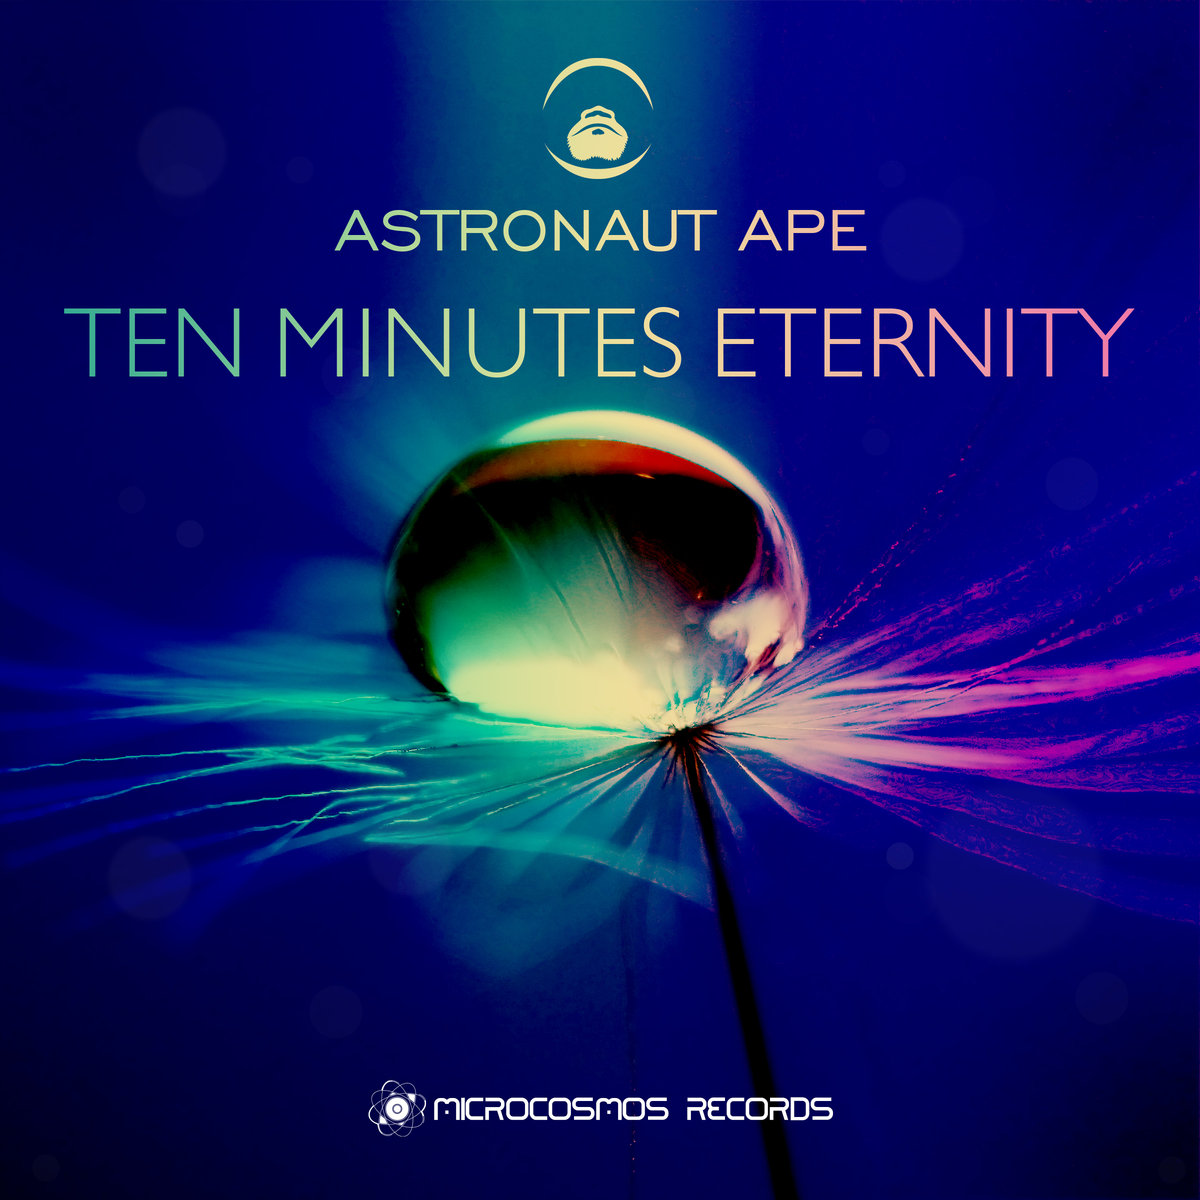 Astronaut Ape - Starfall @ 'Ten Minutes Eternity' album (ambient, chill-out)